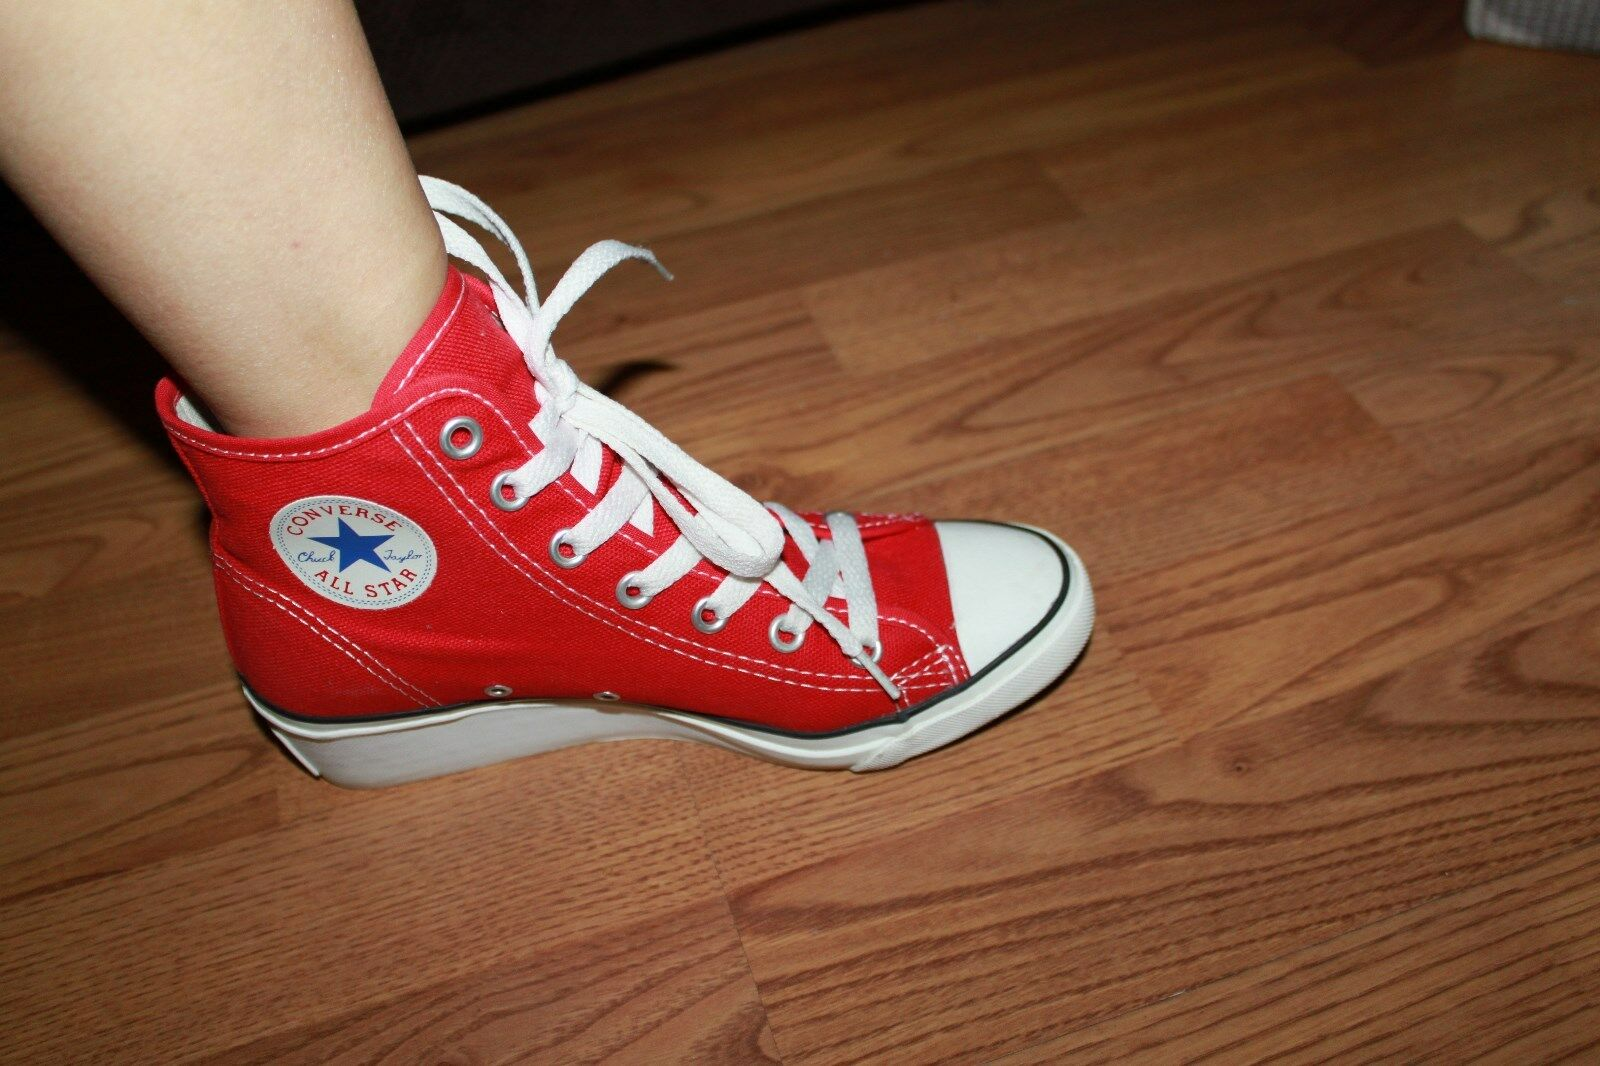 CONVERSE CLASSIC RED WEDGE SNEAKER SHOES WOMEN SIZE 5